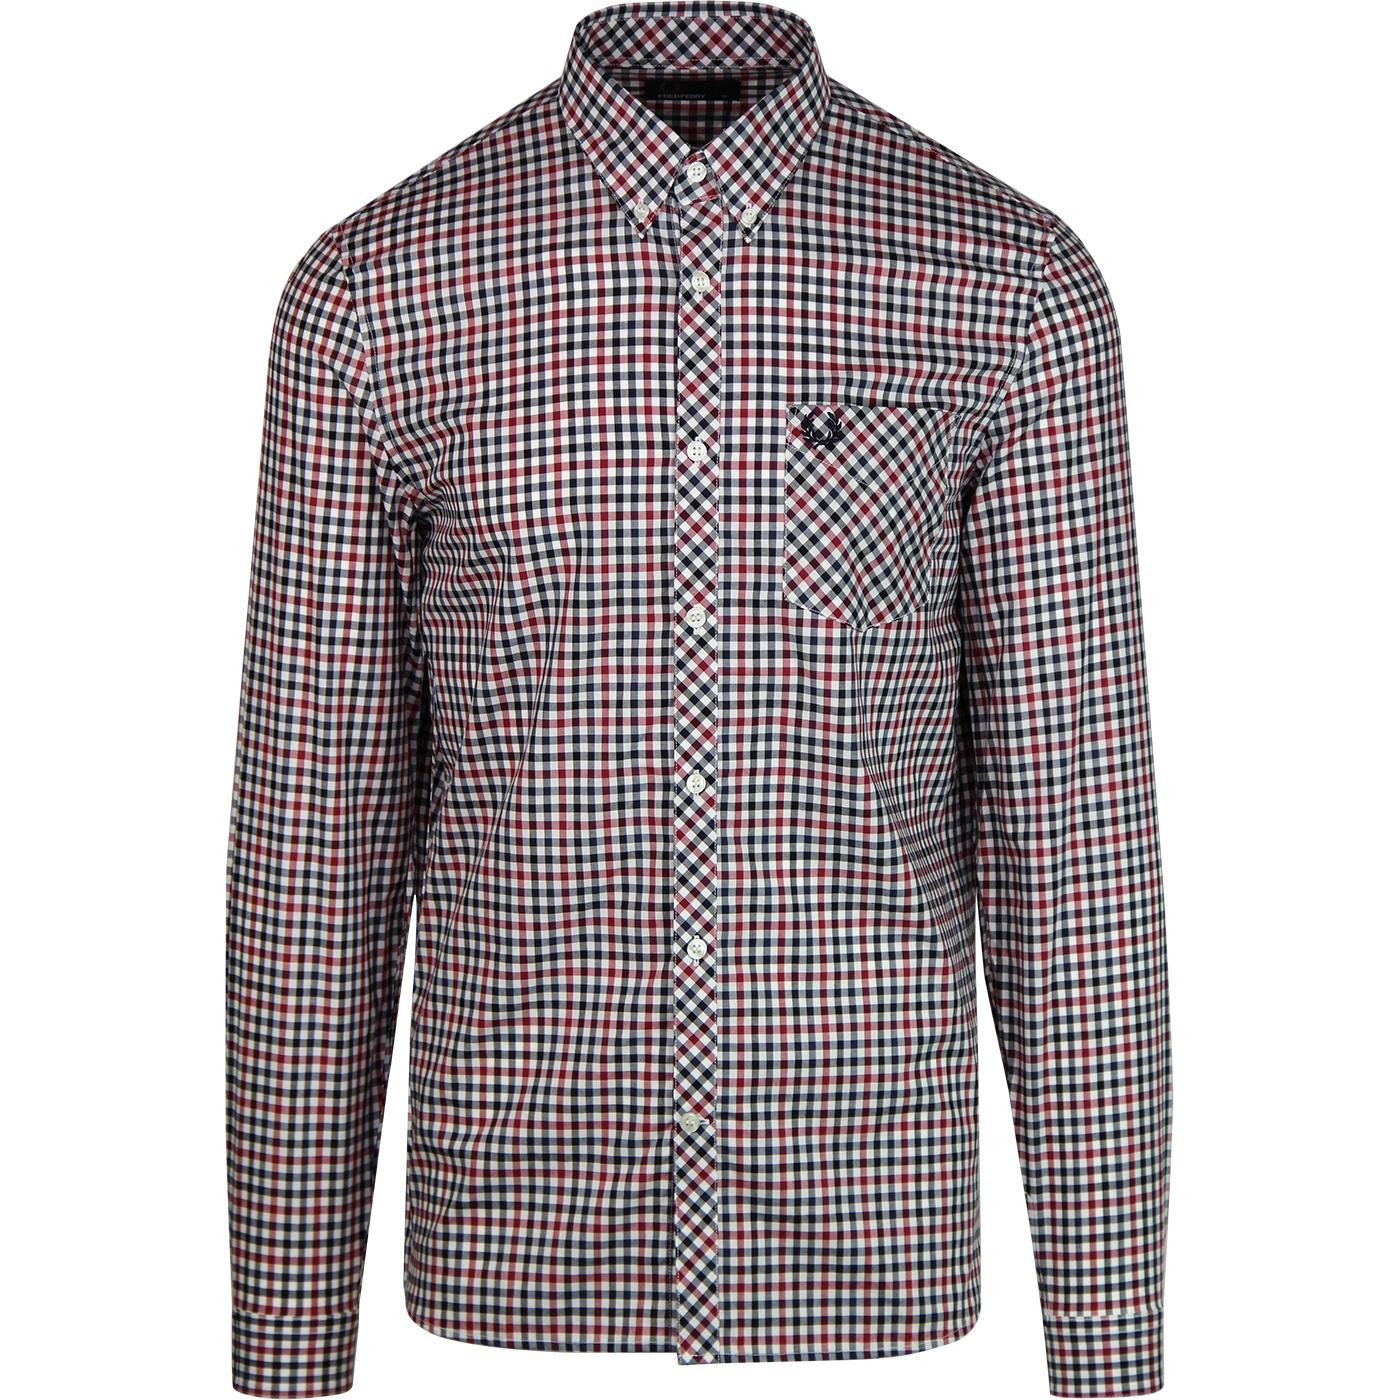 FRED PERRY Mod Four Colour Gingham Shirt (Rosso)